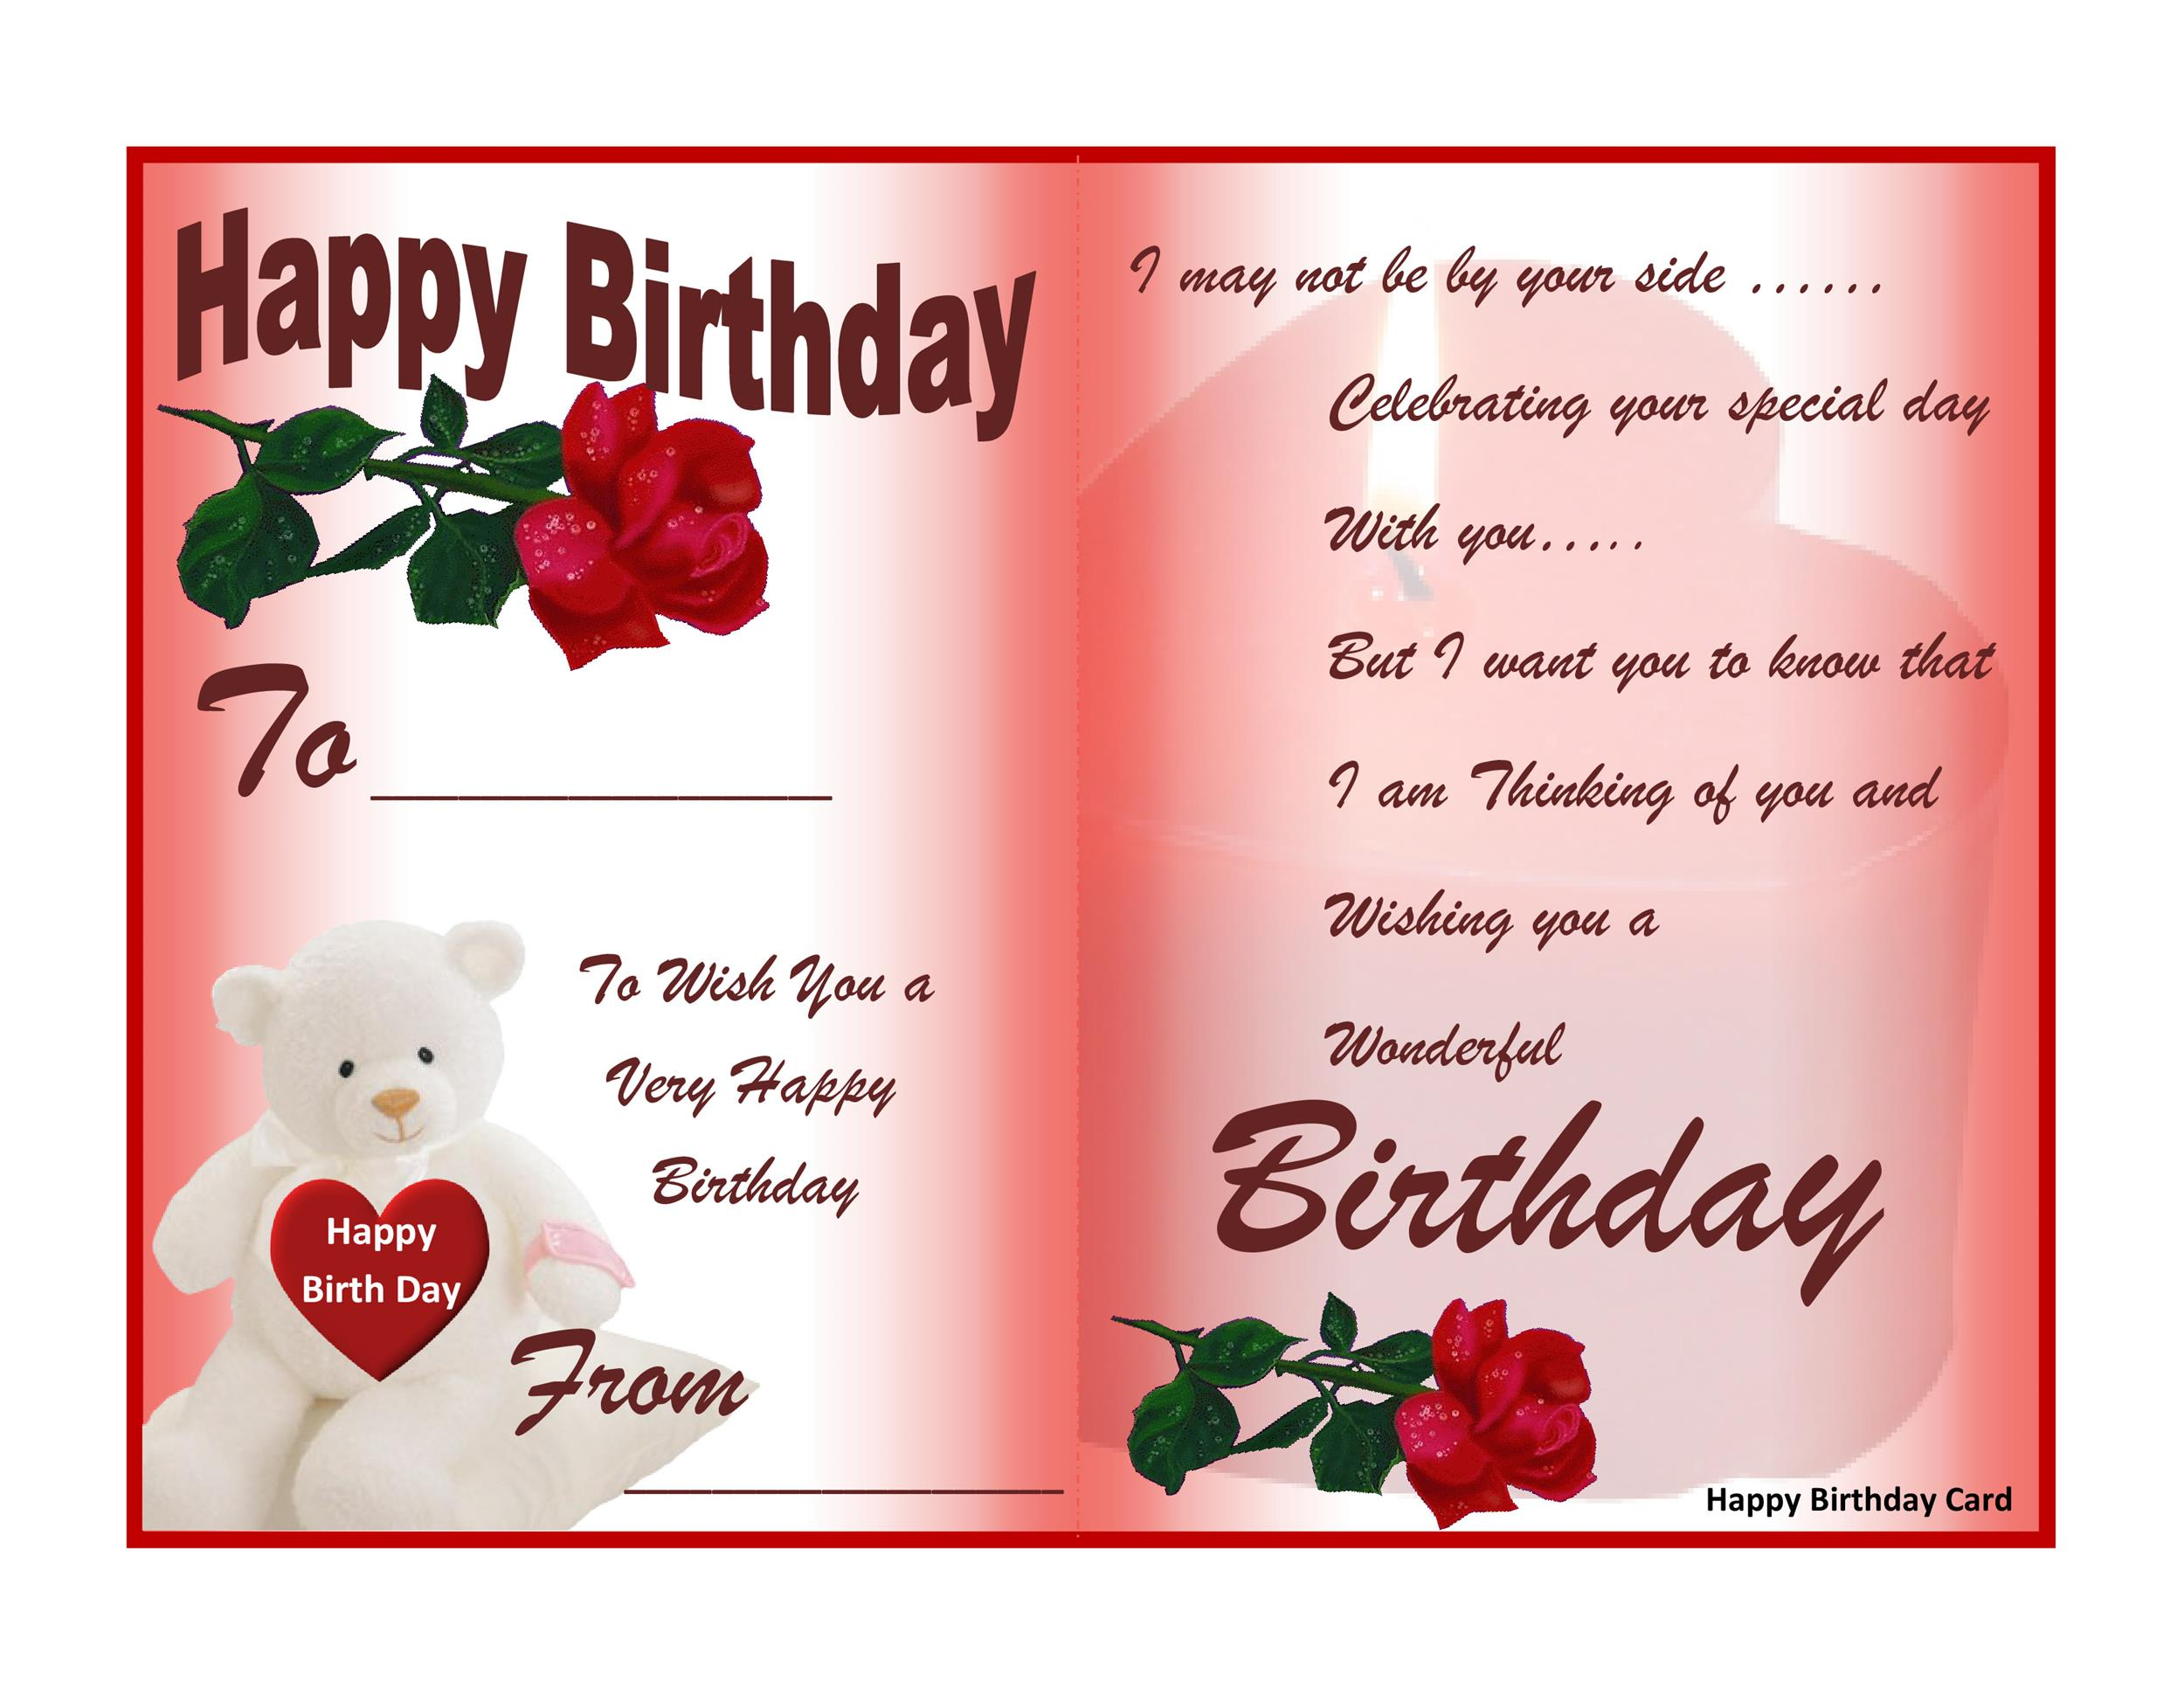 40 Free Birthday Card Templates ᐅ Template Lab